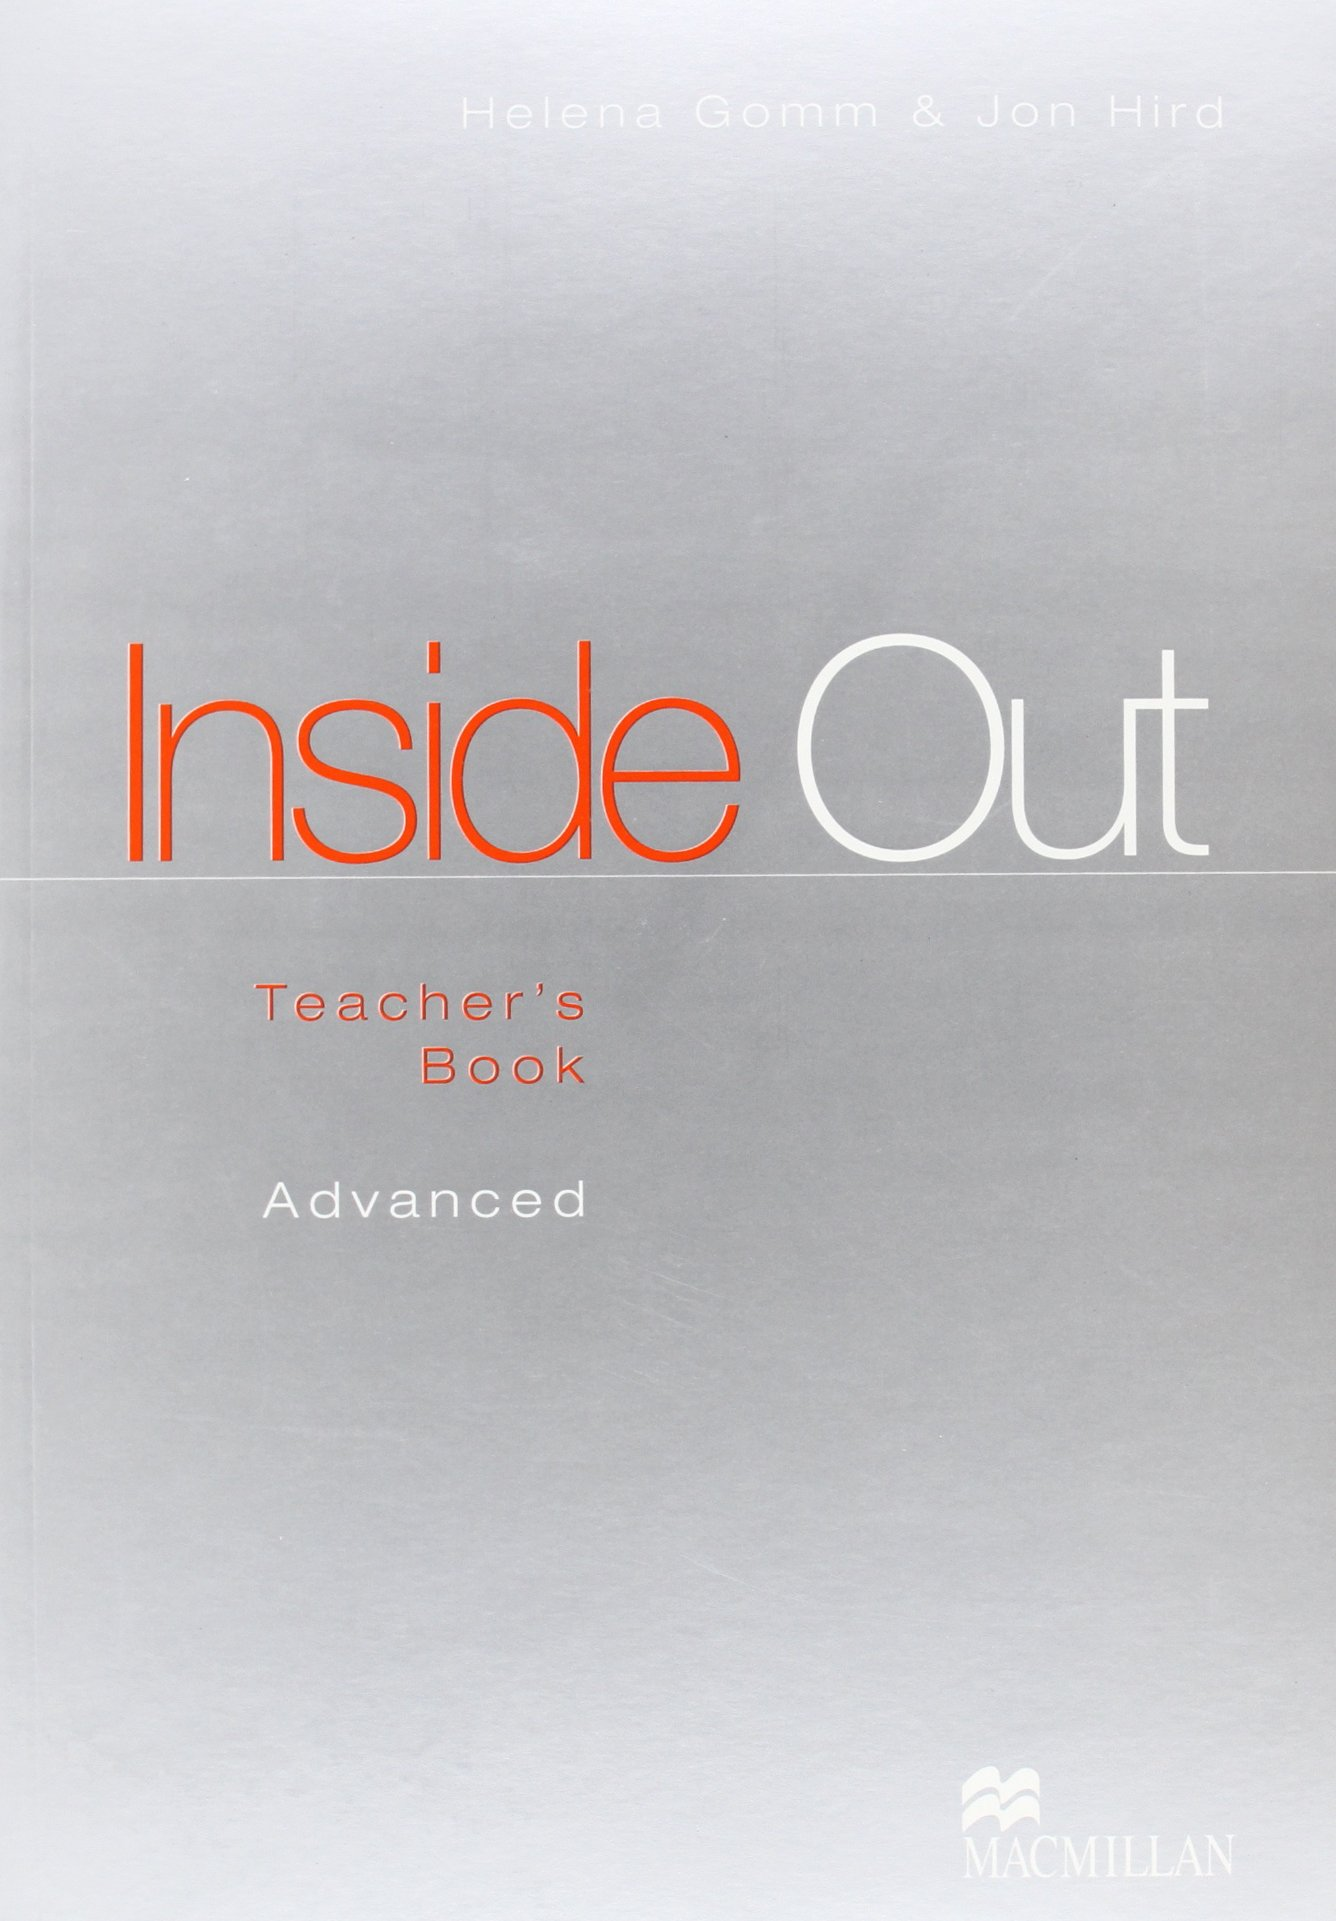 Inside Out - Teacher Book - Advanced: Helena Gomm, Jon Hird: 9780333923443:  Amazon.com: Books